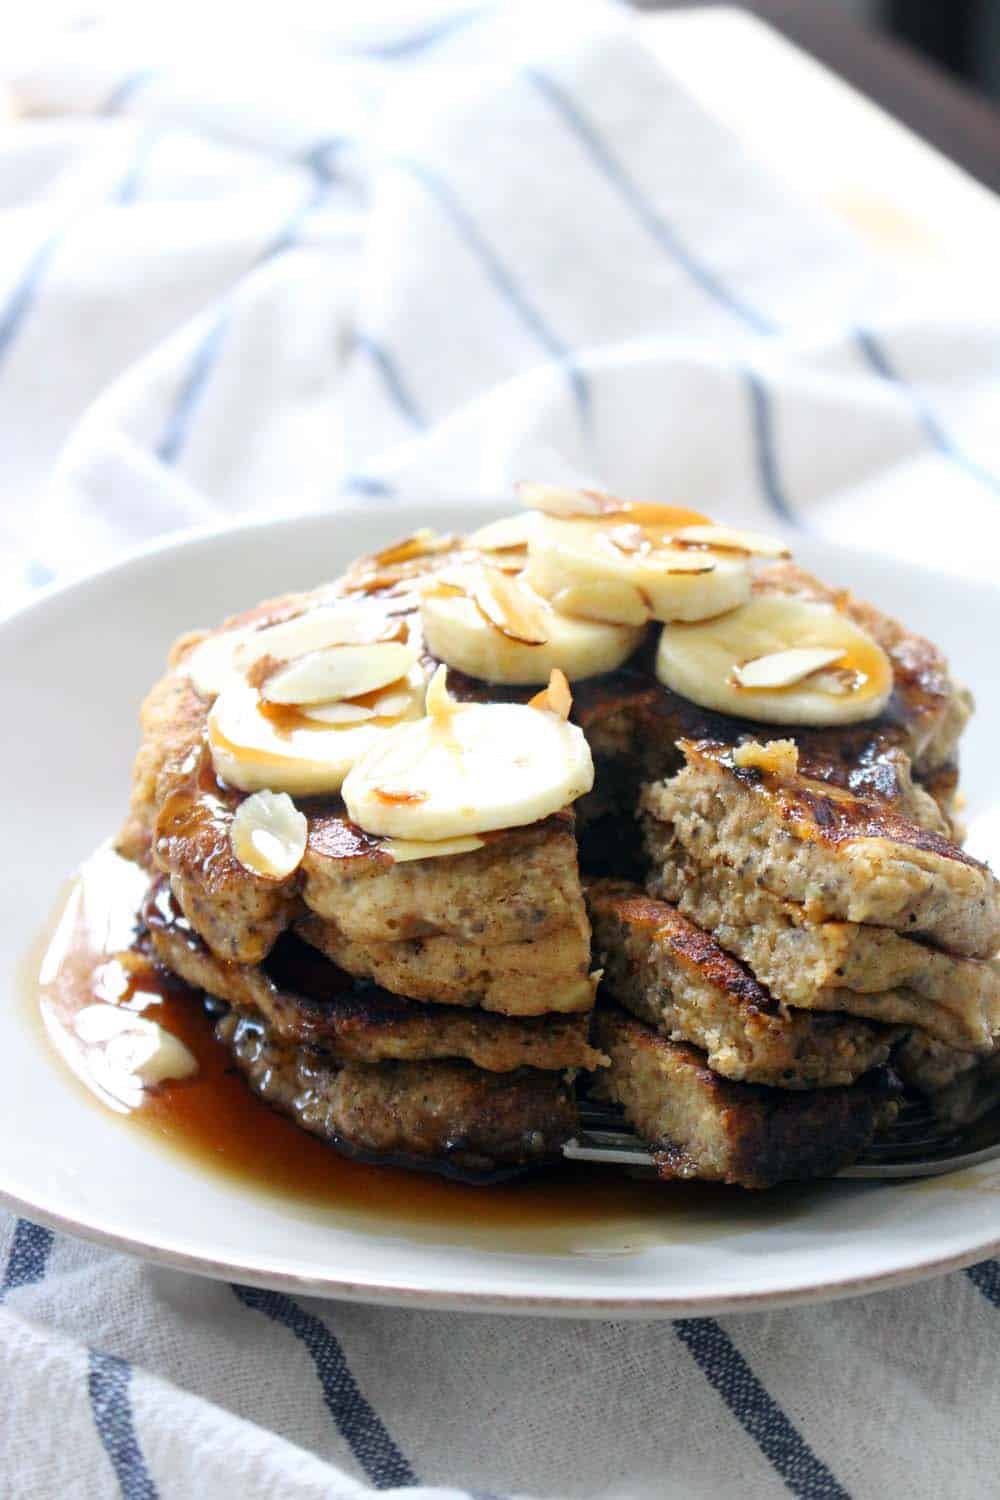 Banana Chia Seed Pancakes | Hearty, delicious, and fluffy banana pancakes with chia seeds added, made with whole wheat flour and sweetened with honey. A healthy, energy boosting breakfast!